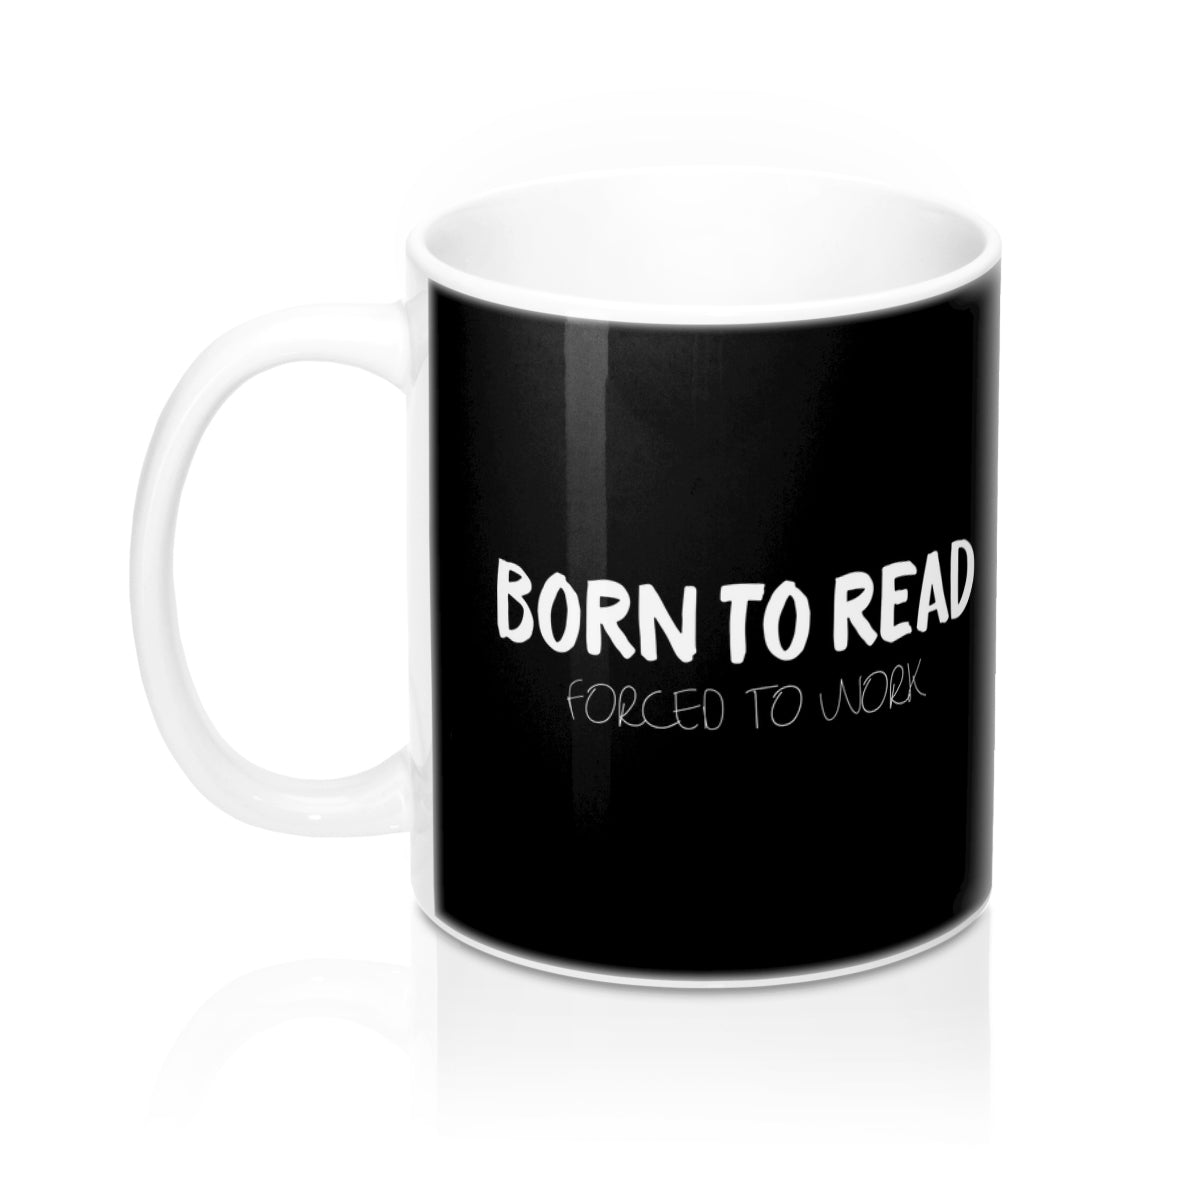 BORN TO READ. Forced to work. Bookworm Problems Mug - LitLifeCo.